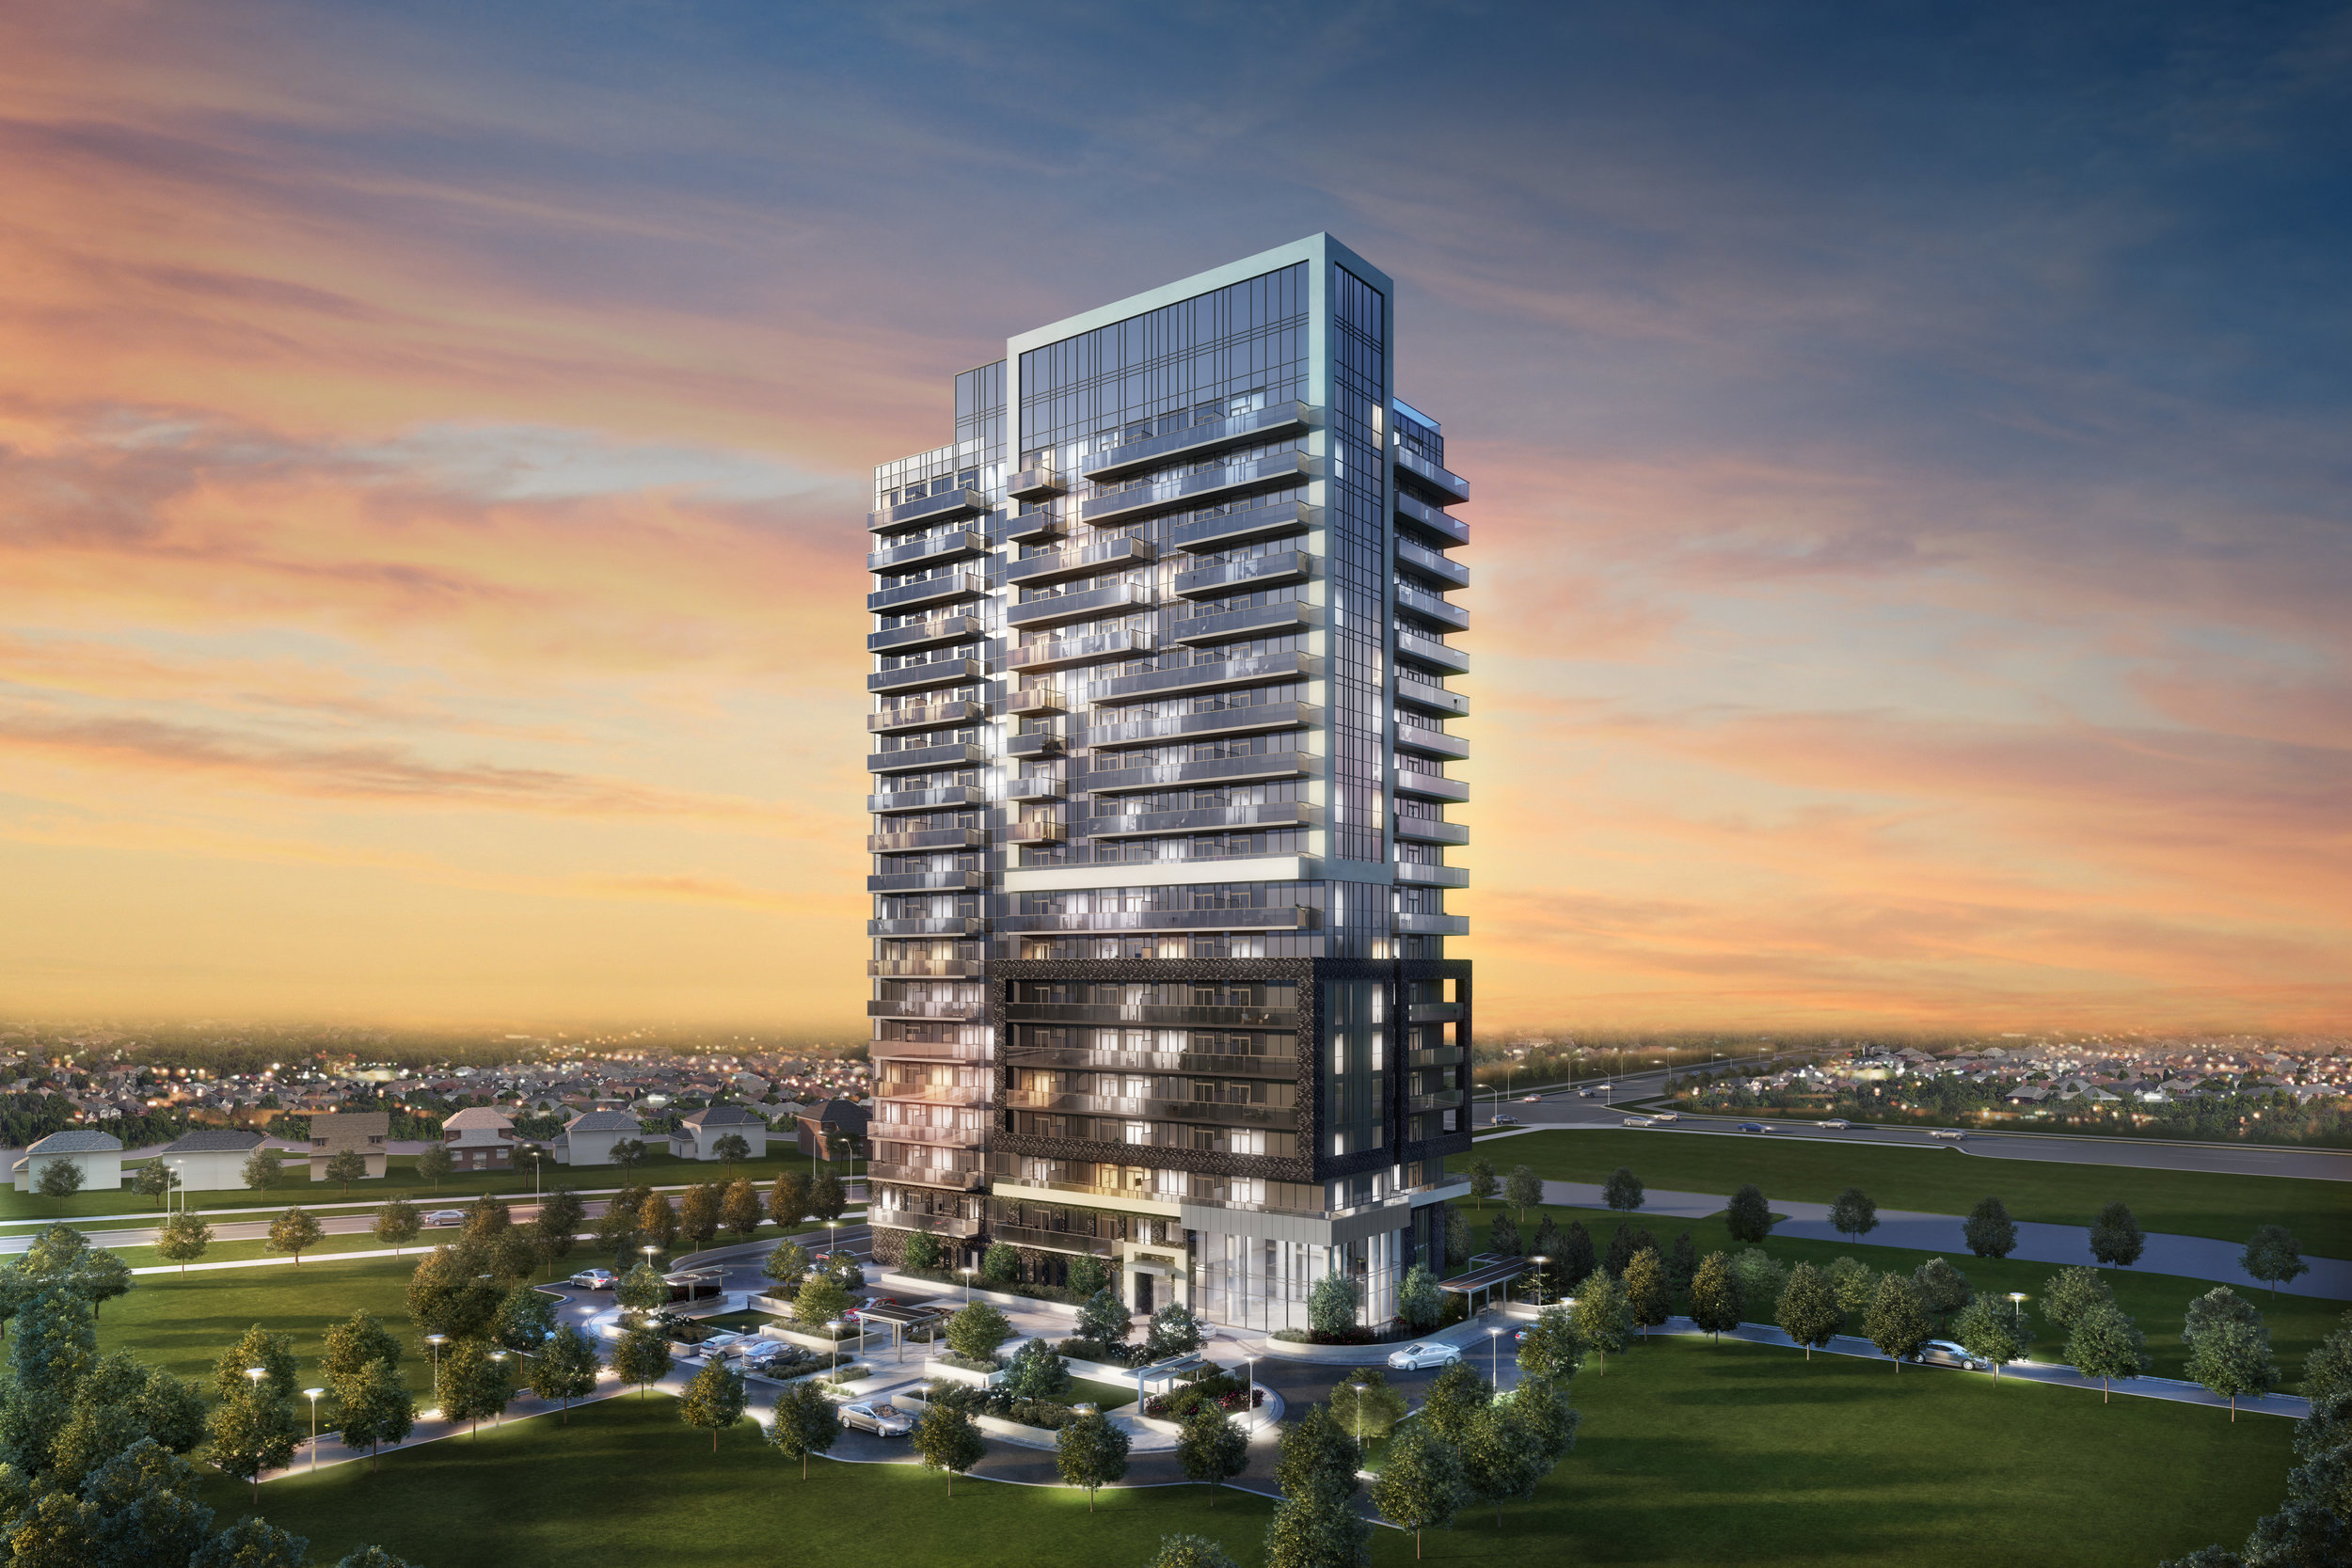 YongeParc Condos - Richmond Hill • Pemberton GroupYongeParc Condos is a new pre-construction Condo located at Highway 7 and Yonge in the heart of Richmond Hill. YongeParc Condos have 18 stories and 202 units, with unit sizes ranging from 580 to 1355 sq. ft.